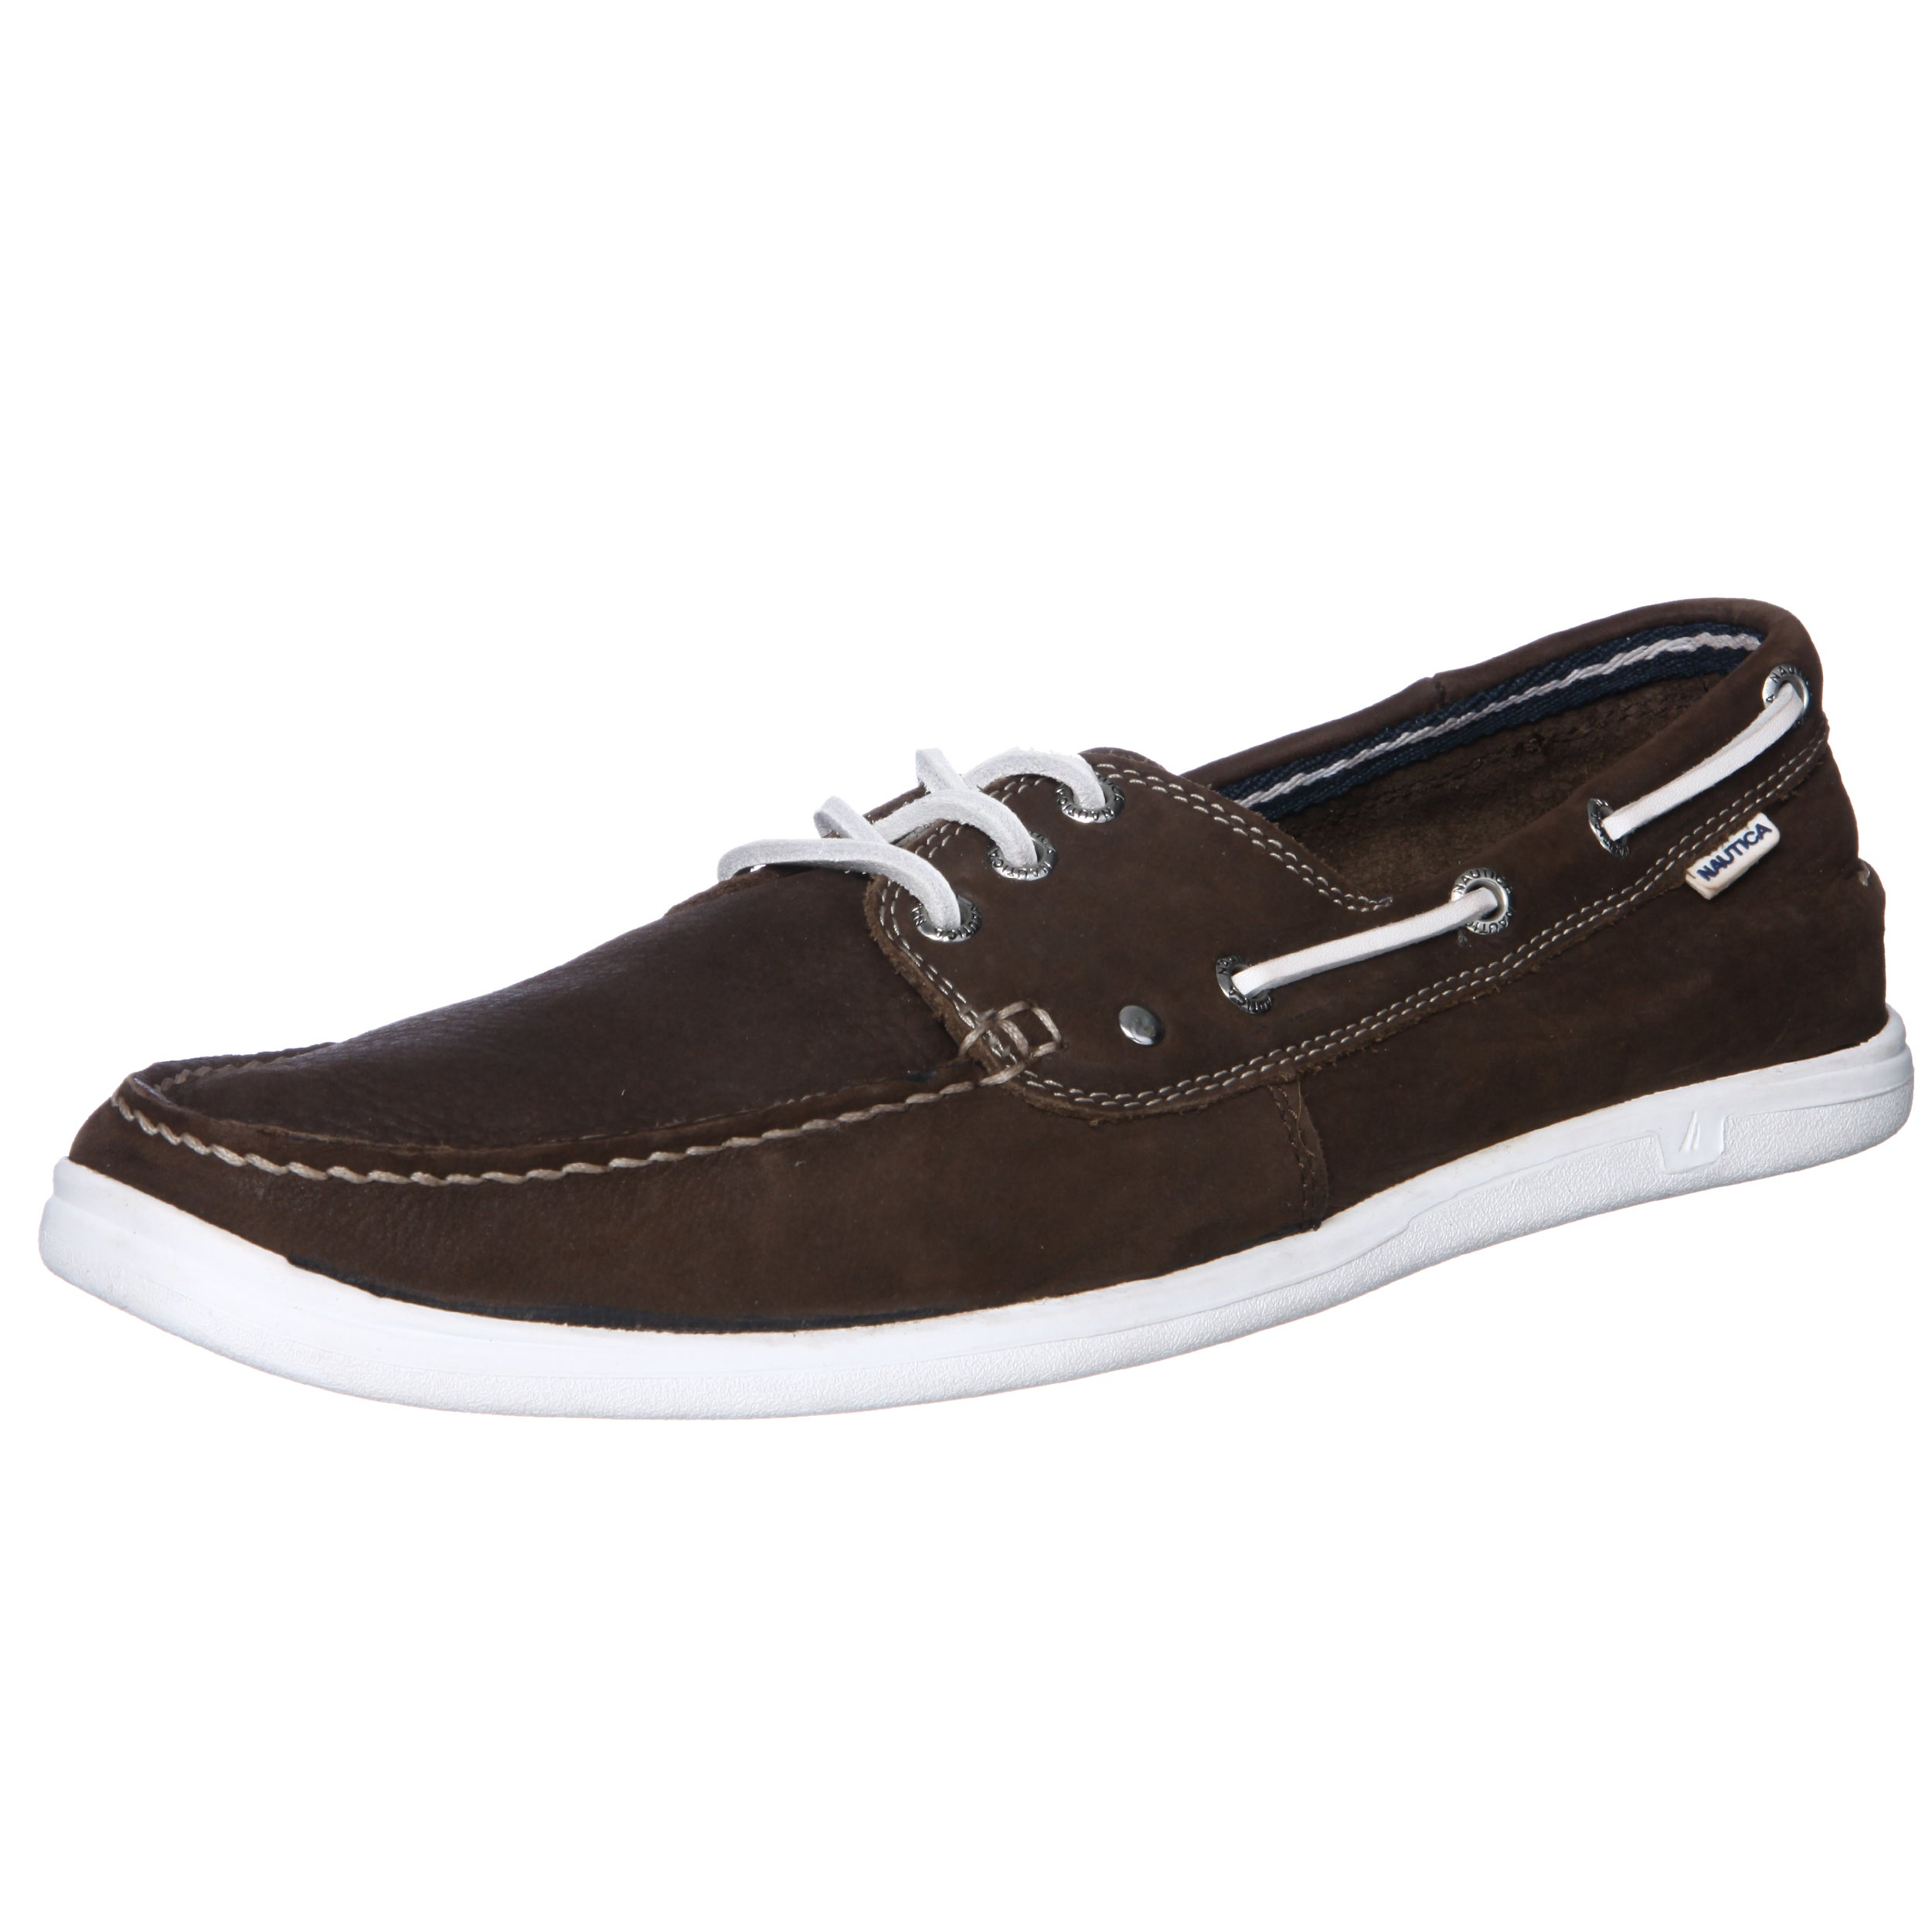 Nautica Little River Boat Shoe (Toddler/Little Kid/Big Kid) - Polyvore